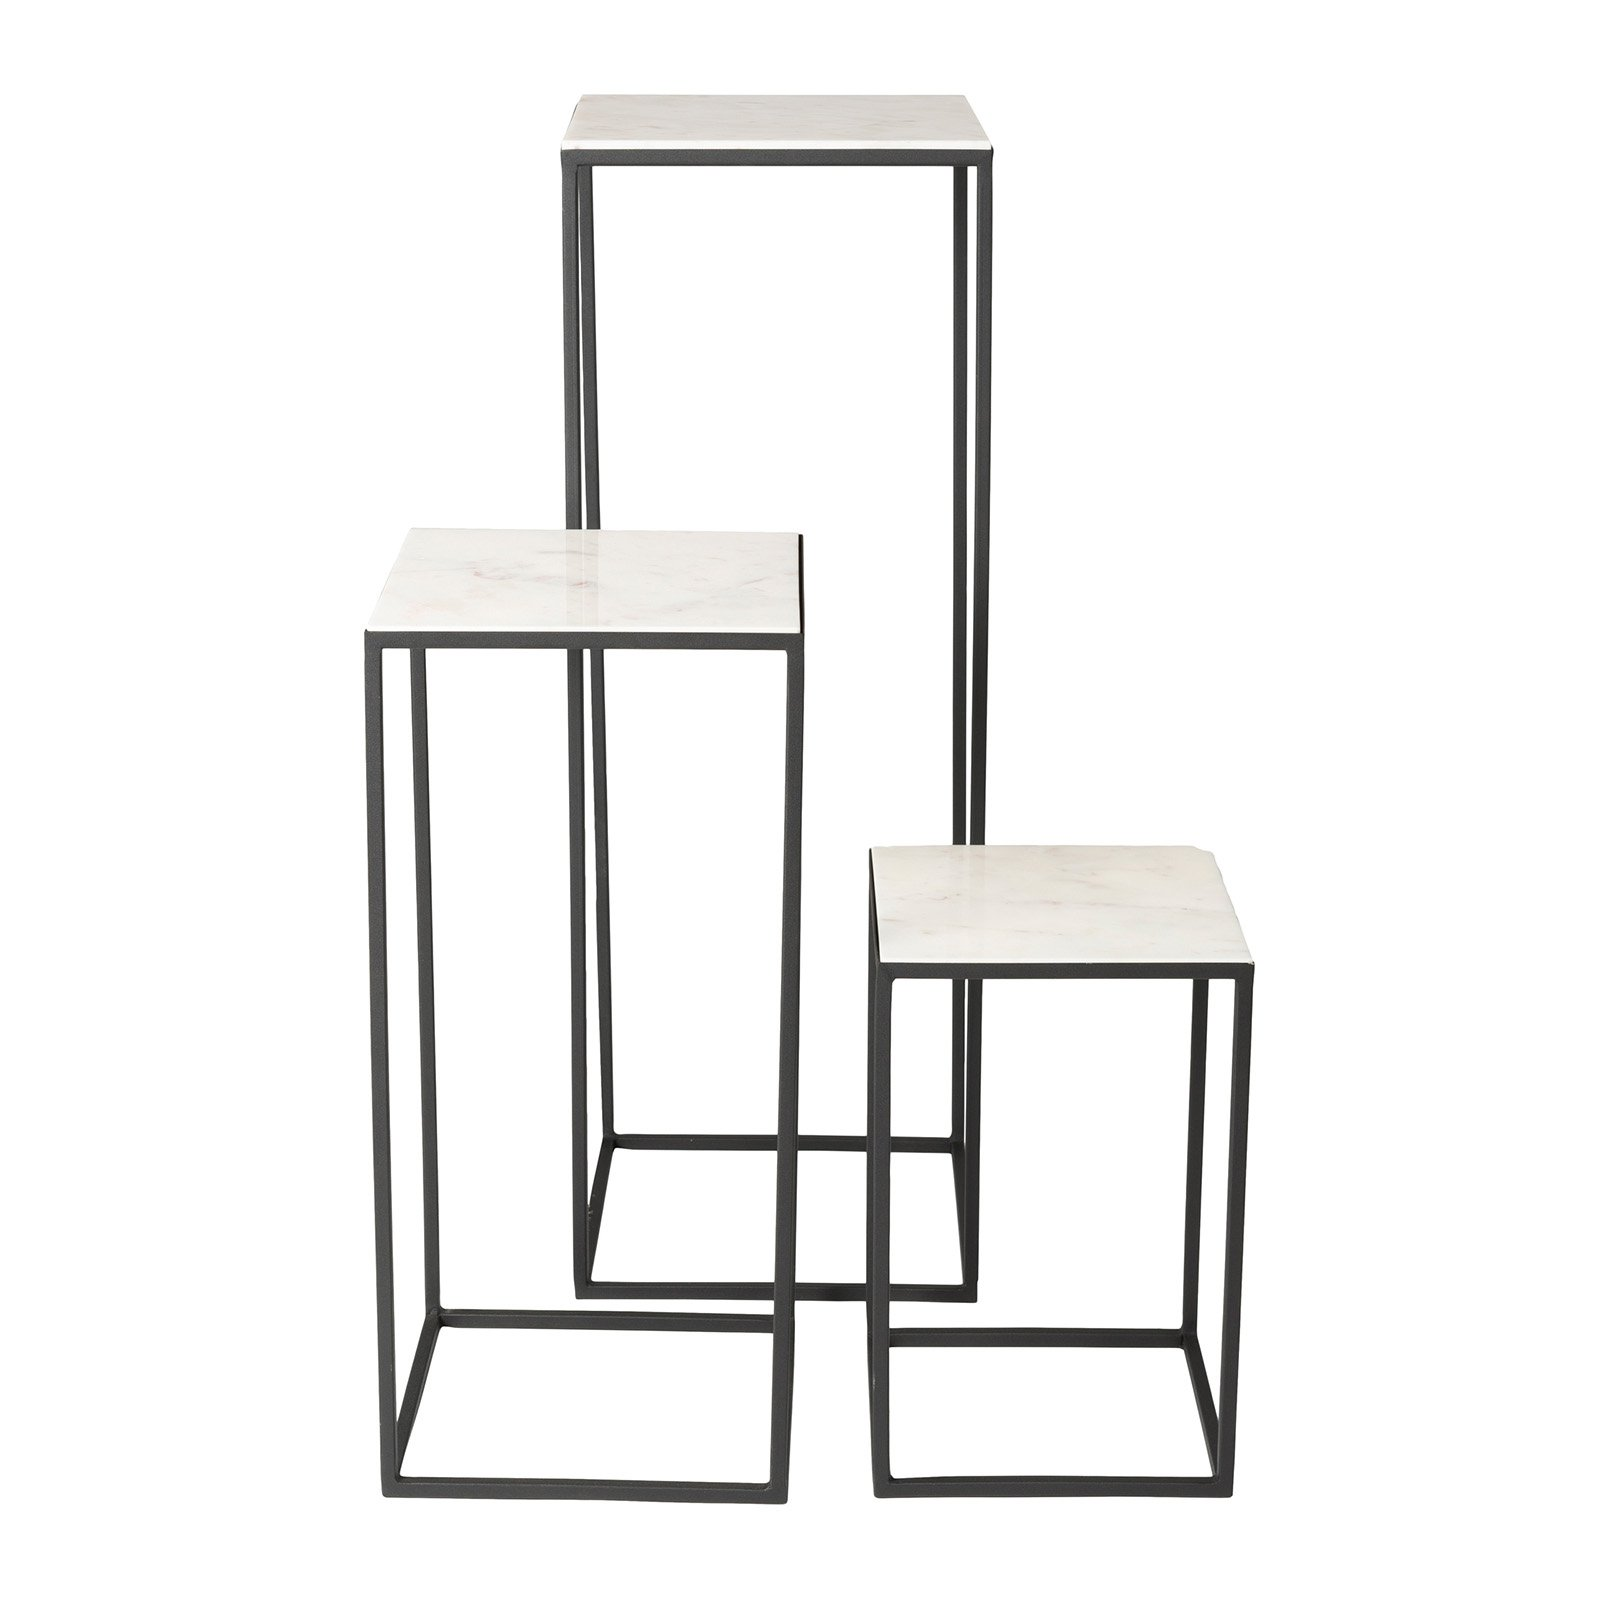 Highpoint Marble Pedestal Nesting Plant Stands - Set of 3